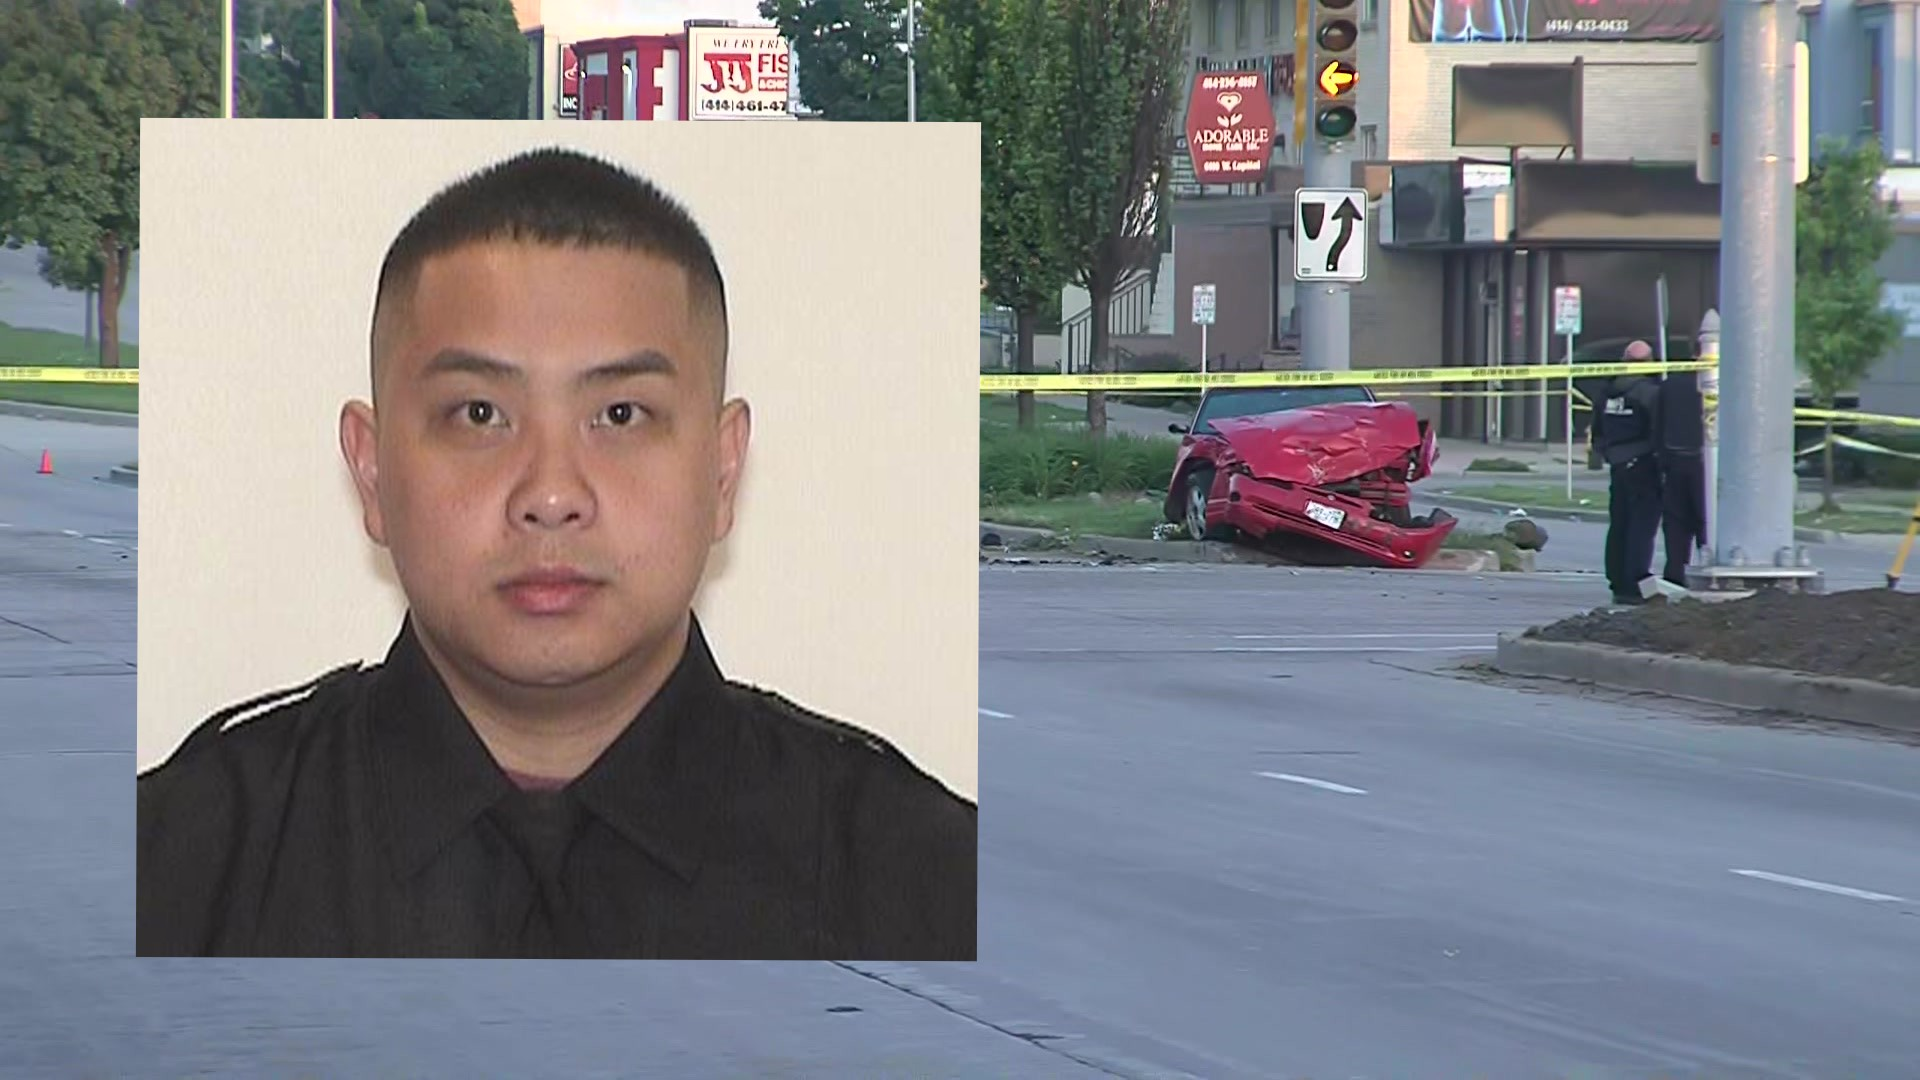 Milwaukee Police Officer hit, killed in crash on his way home from work